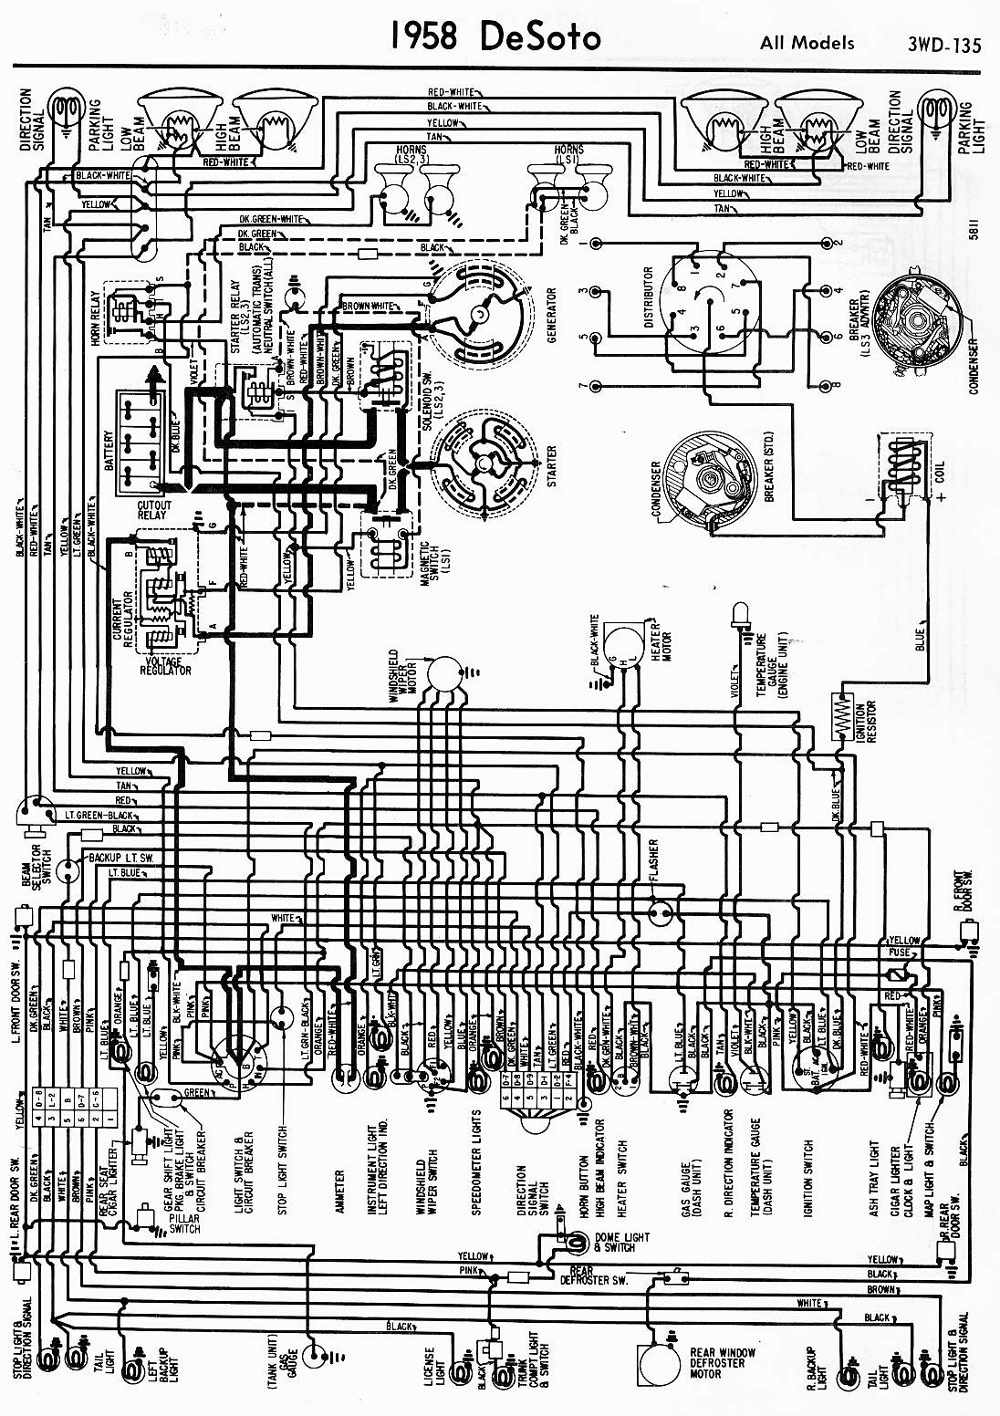 wiring-diagrams-of-1958-desoto-all-models Japanese Car Wiring Diagrams on